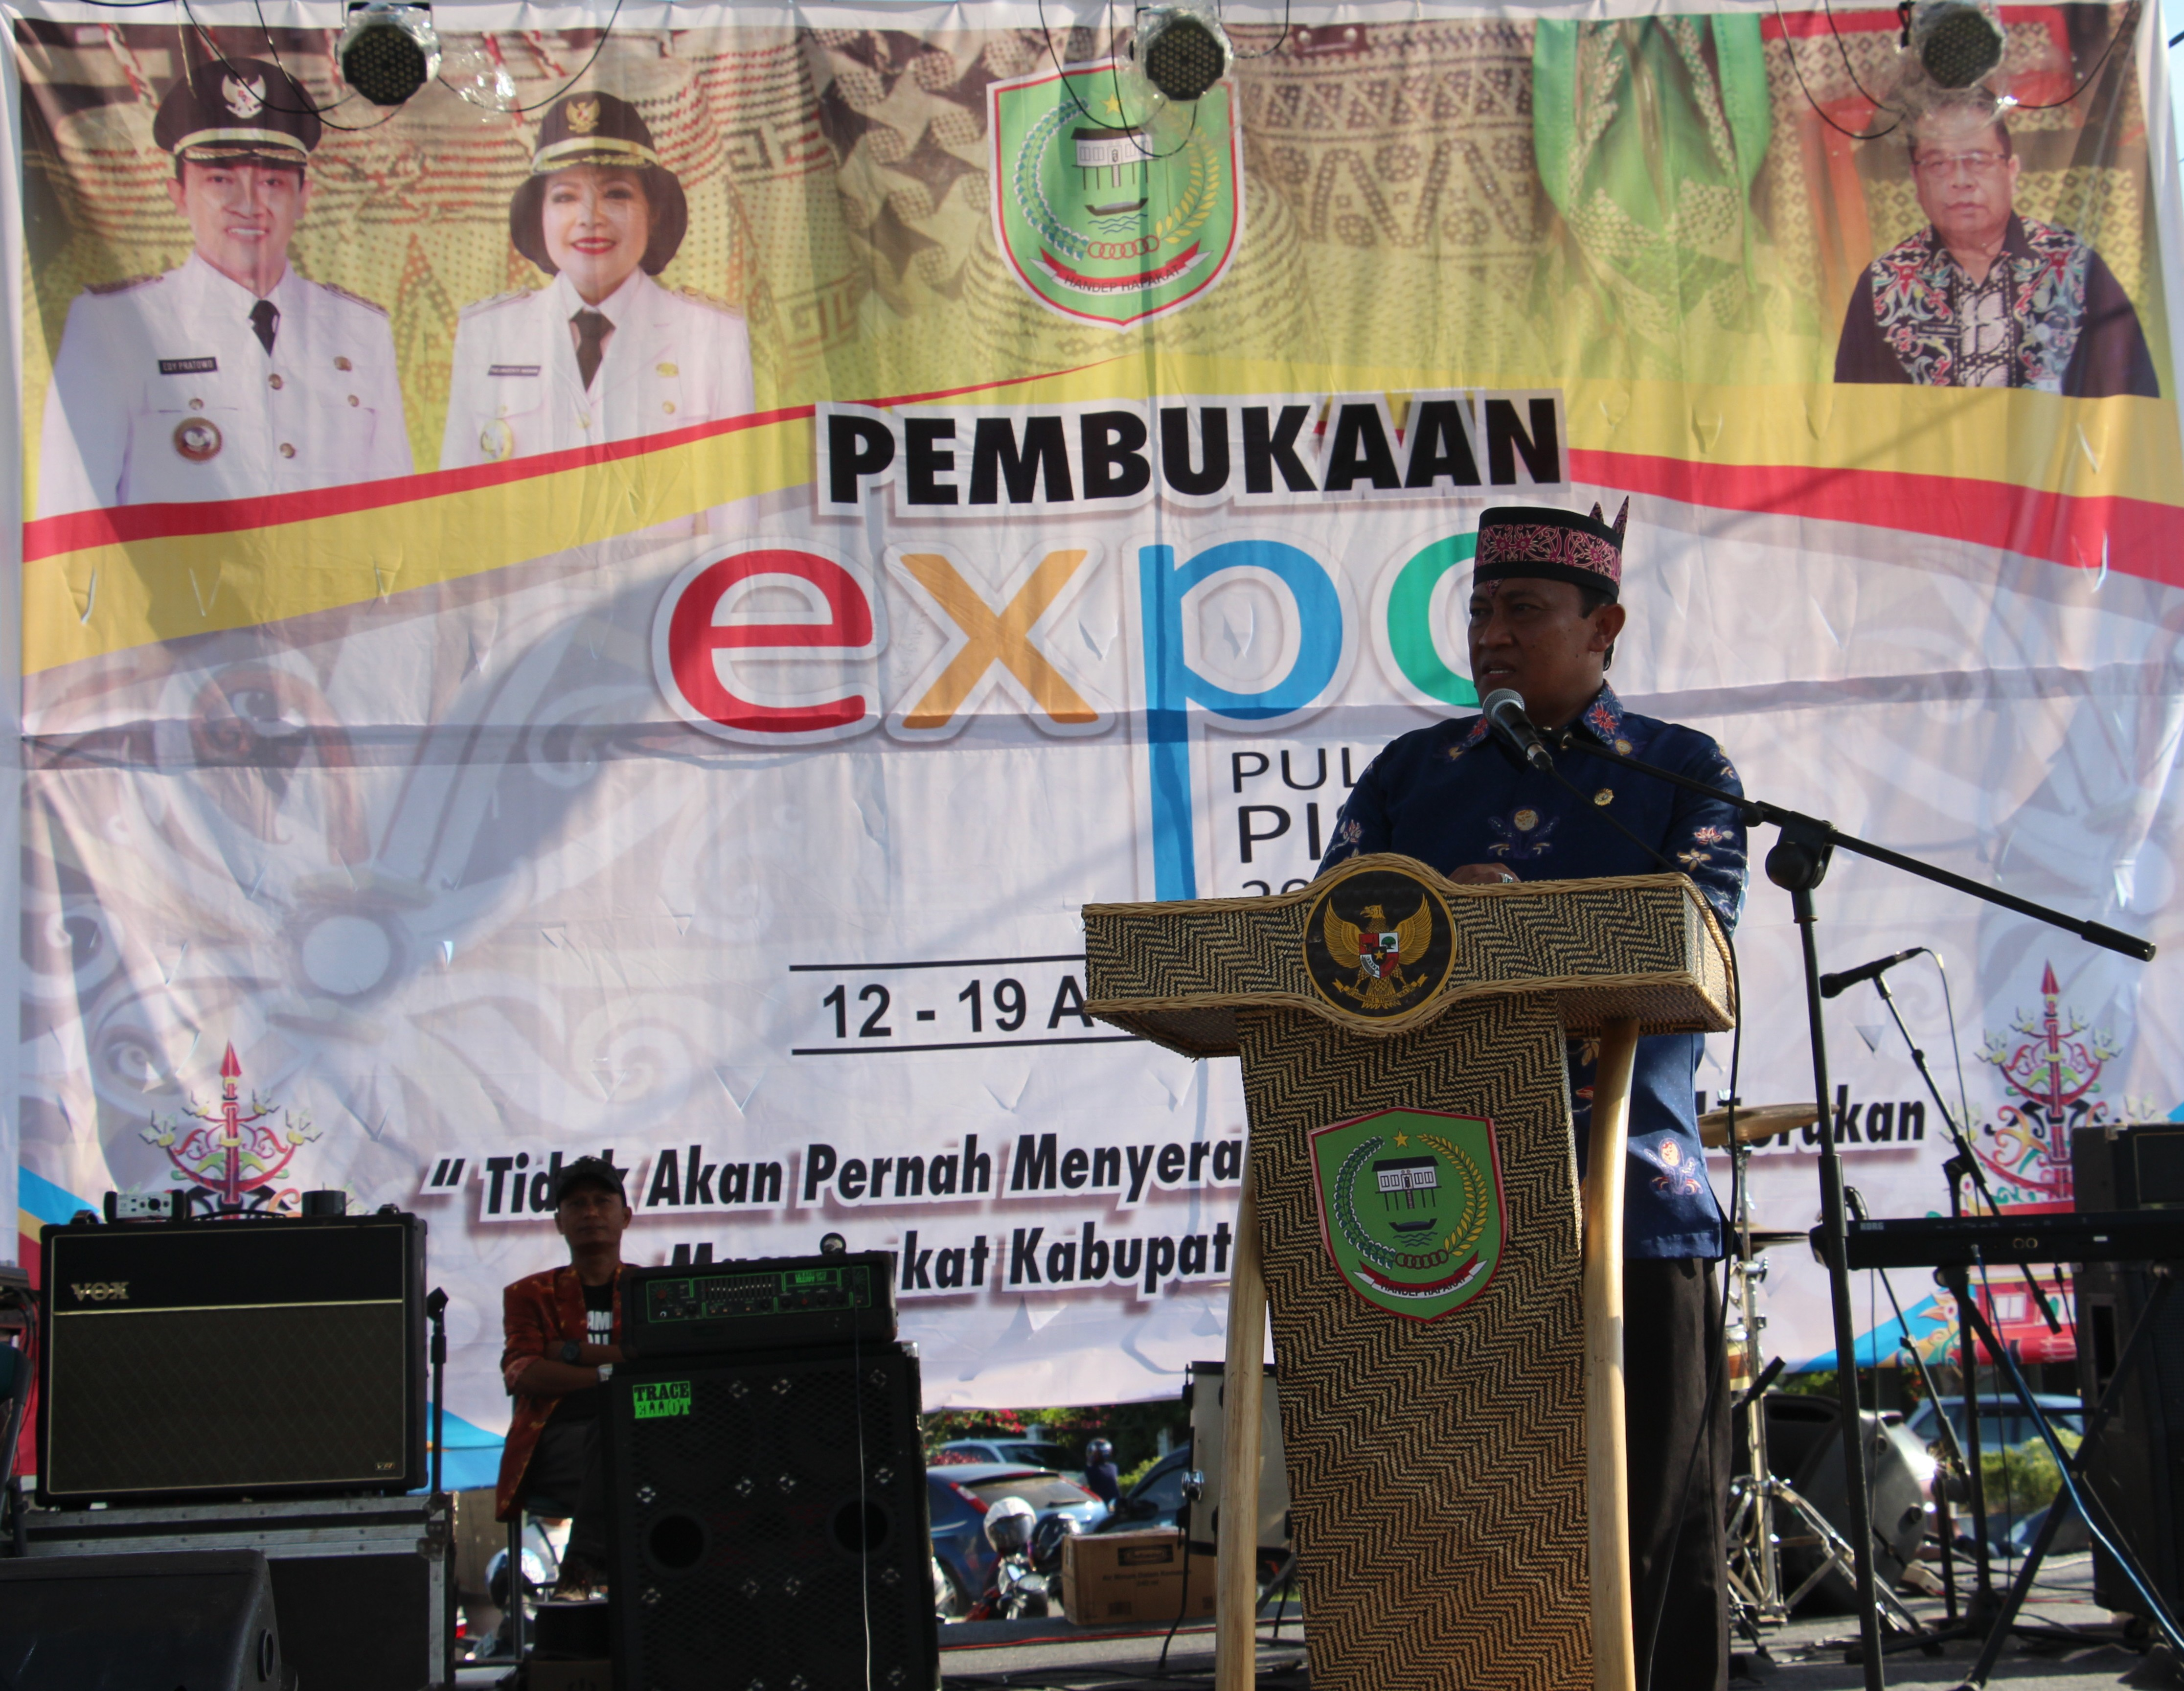 pulpis expo 2016, 12 agustus 2016 (2)